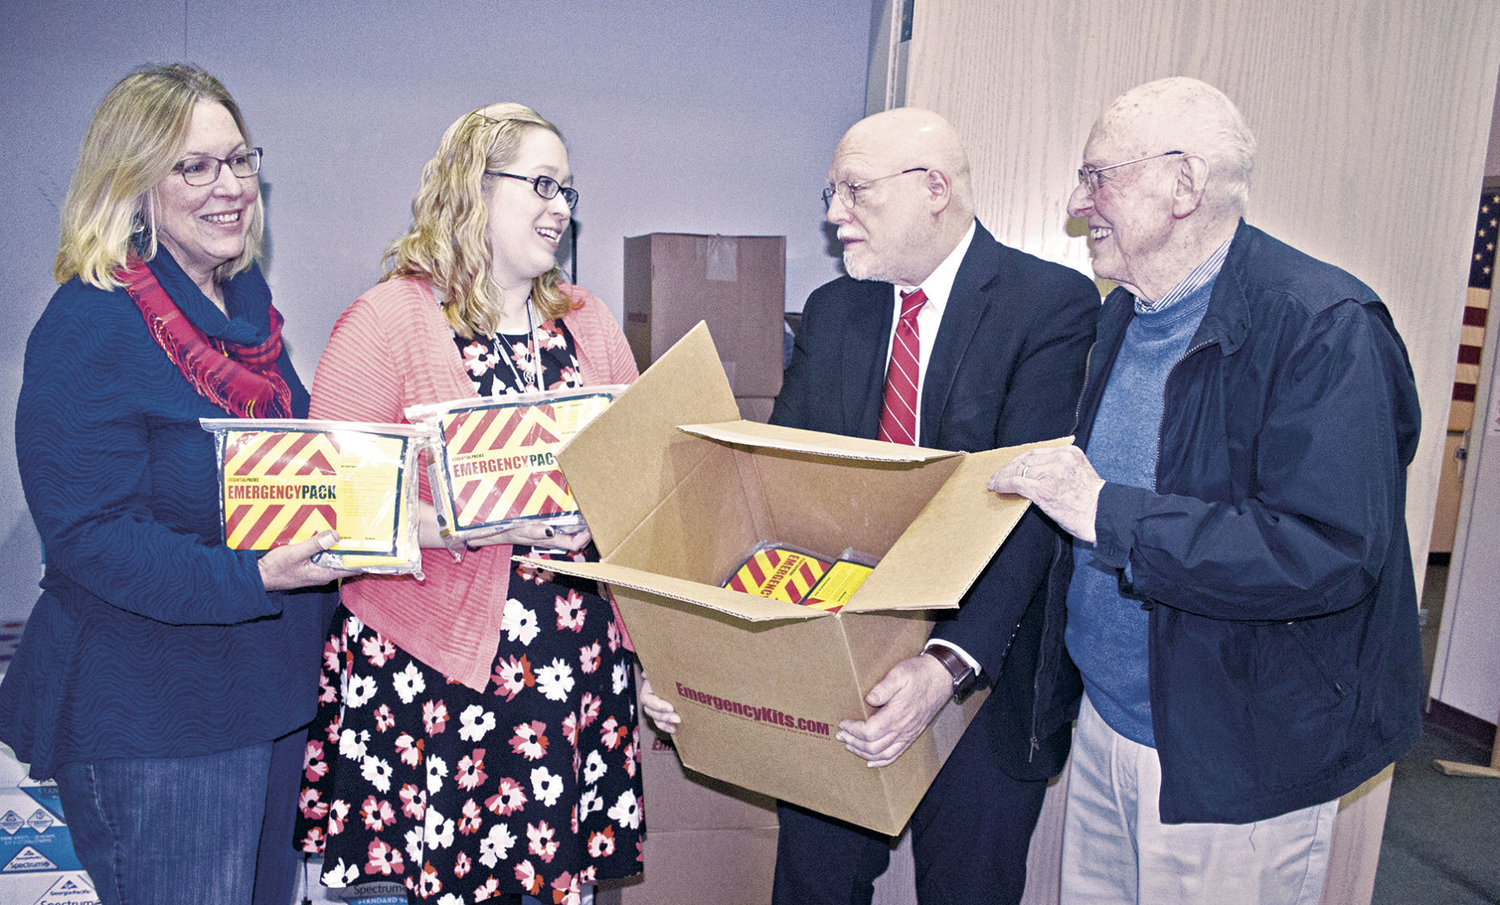 Jane Lohry Armstrong (far left) and Kalie Enlow, principal of Chimacum Creek Primary School in Port Hadlock, check in the emergency kits handed off to the school by Ron McClung, pastor of the Peace Lutheran Fellowship, and Z. Jack Randall (far right). Photo by Kirk Boxleitner